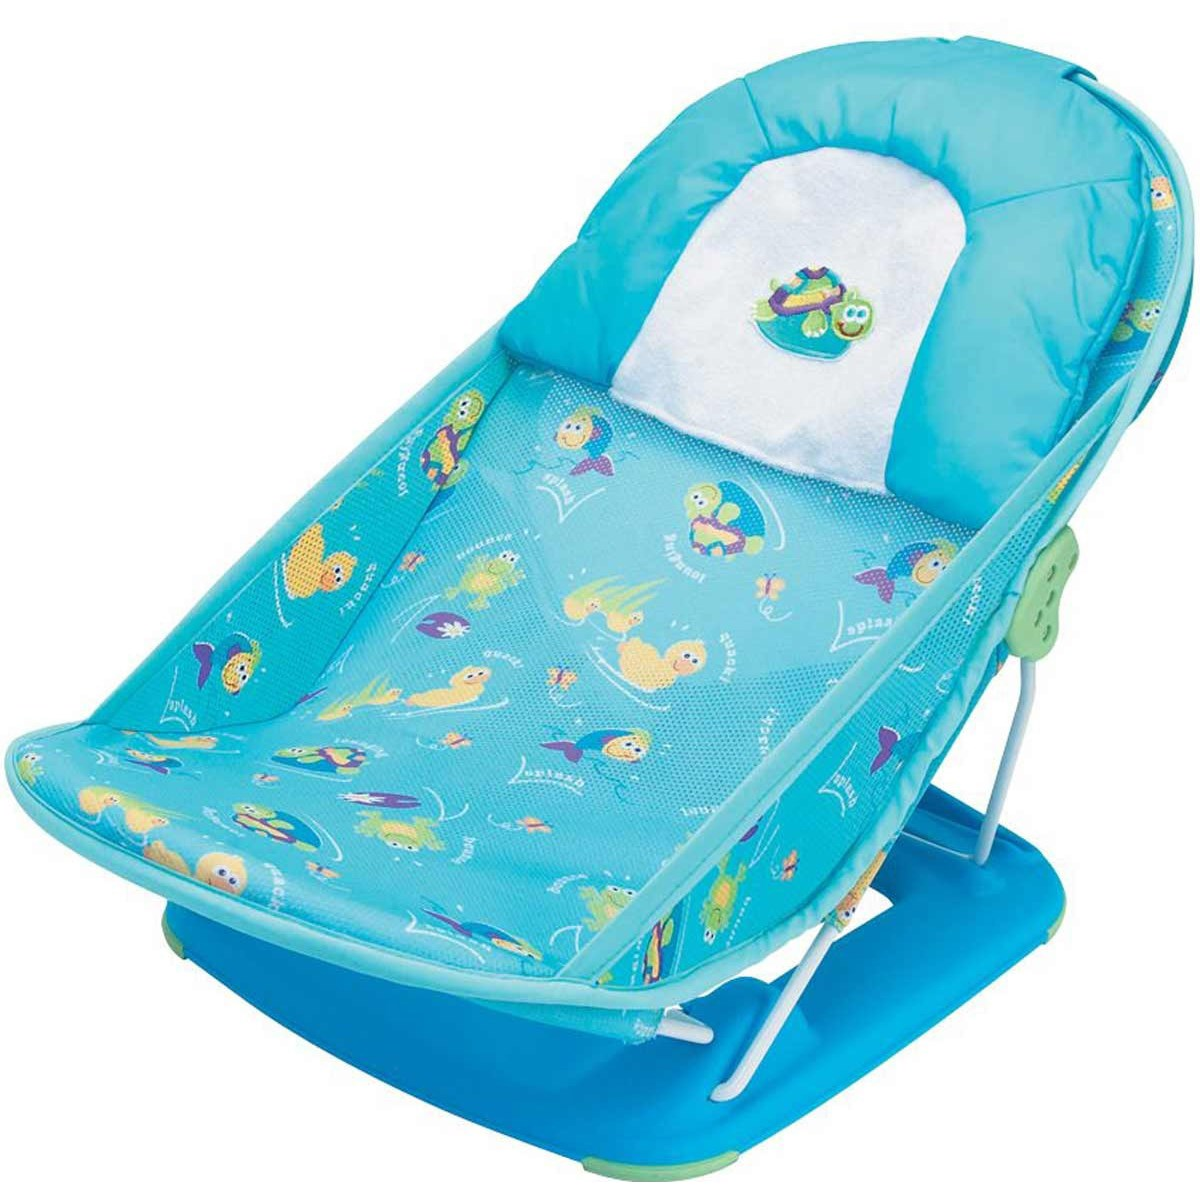 Ghế tắm nằm (xanh) Summer 18500 - Mother's Touch Deluxe Baby Bather